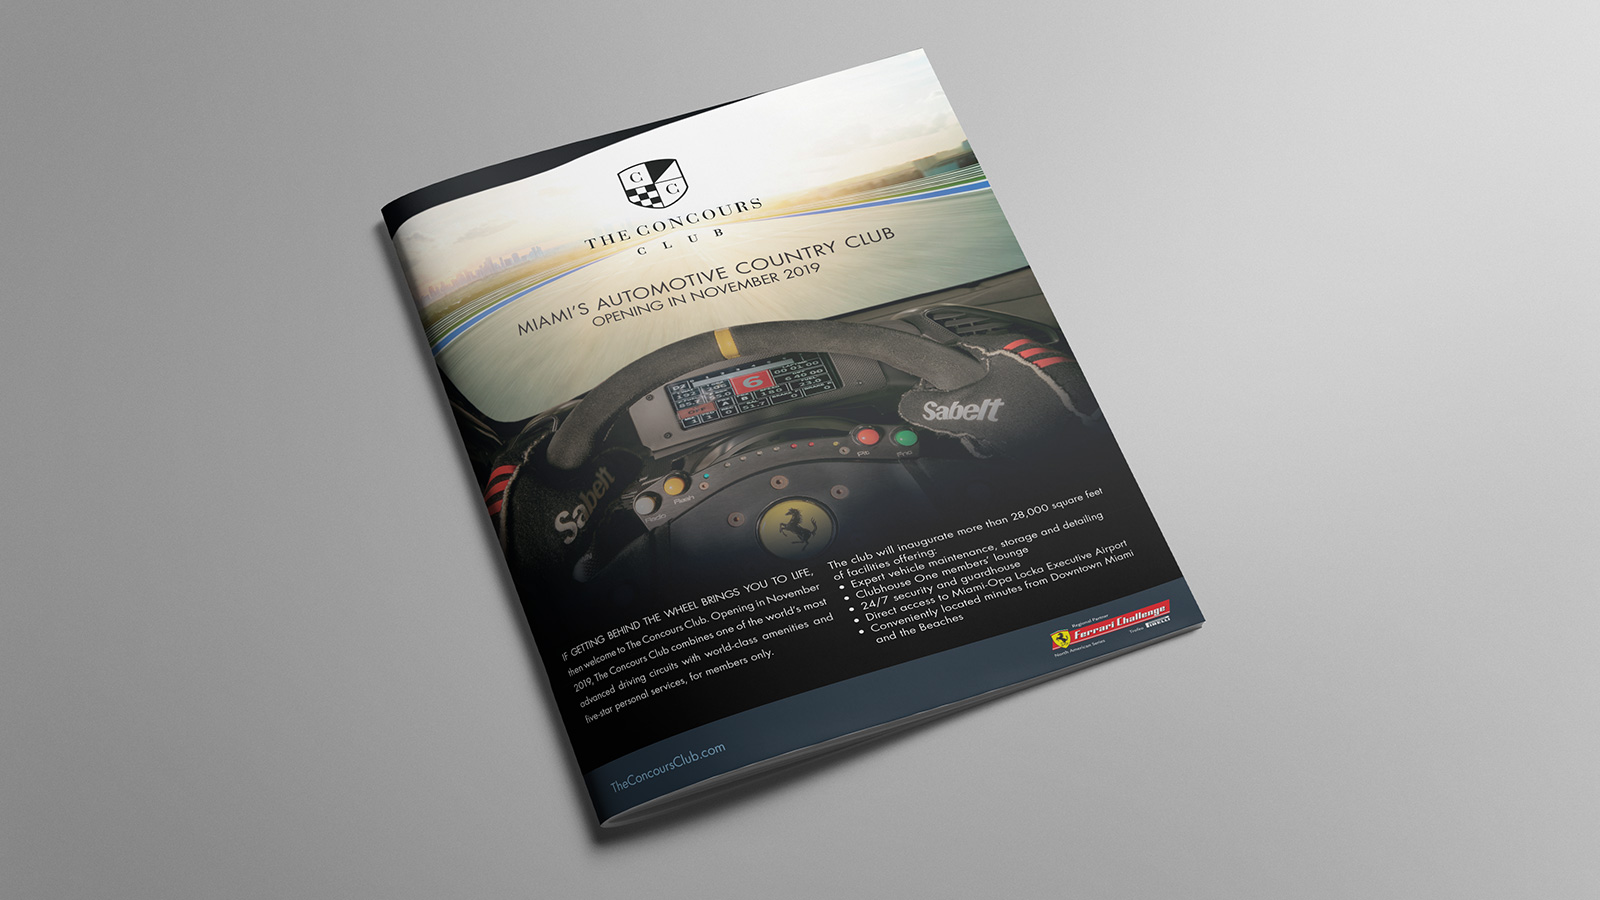 The Concours Club Ad